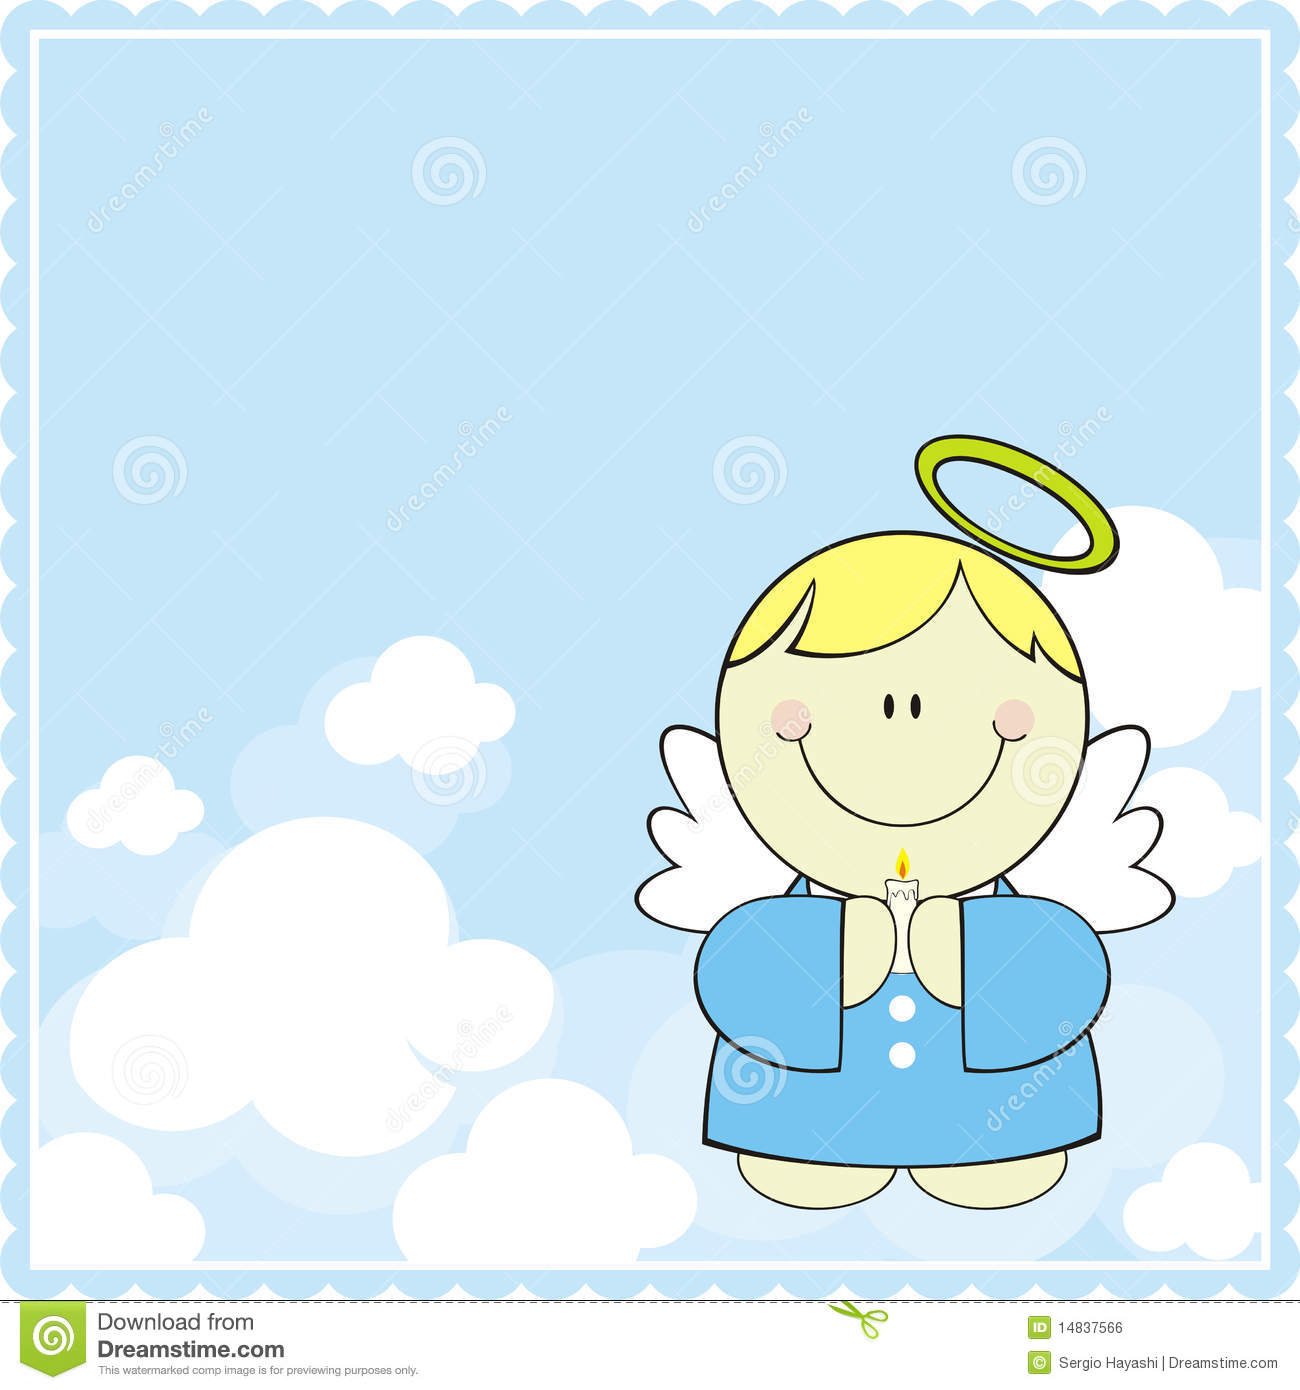 Christening Invitation Baby Boy with nice invitations example